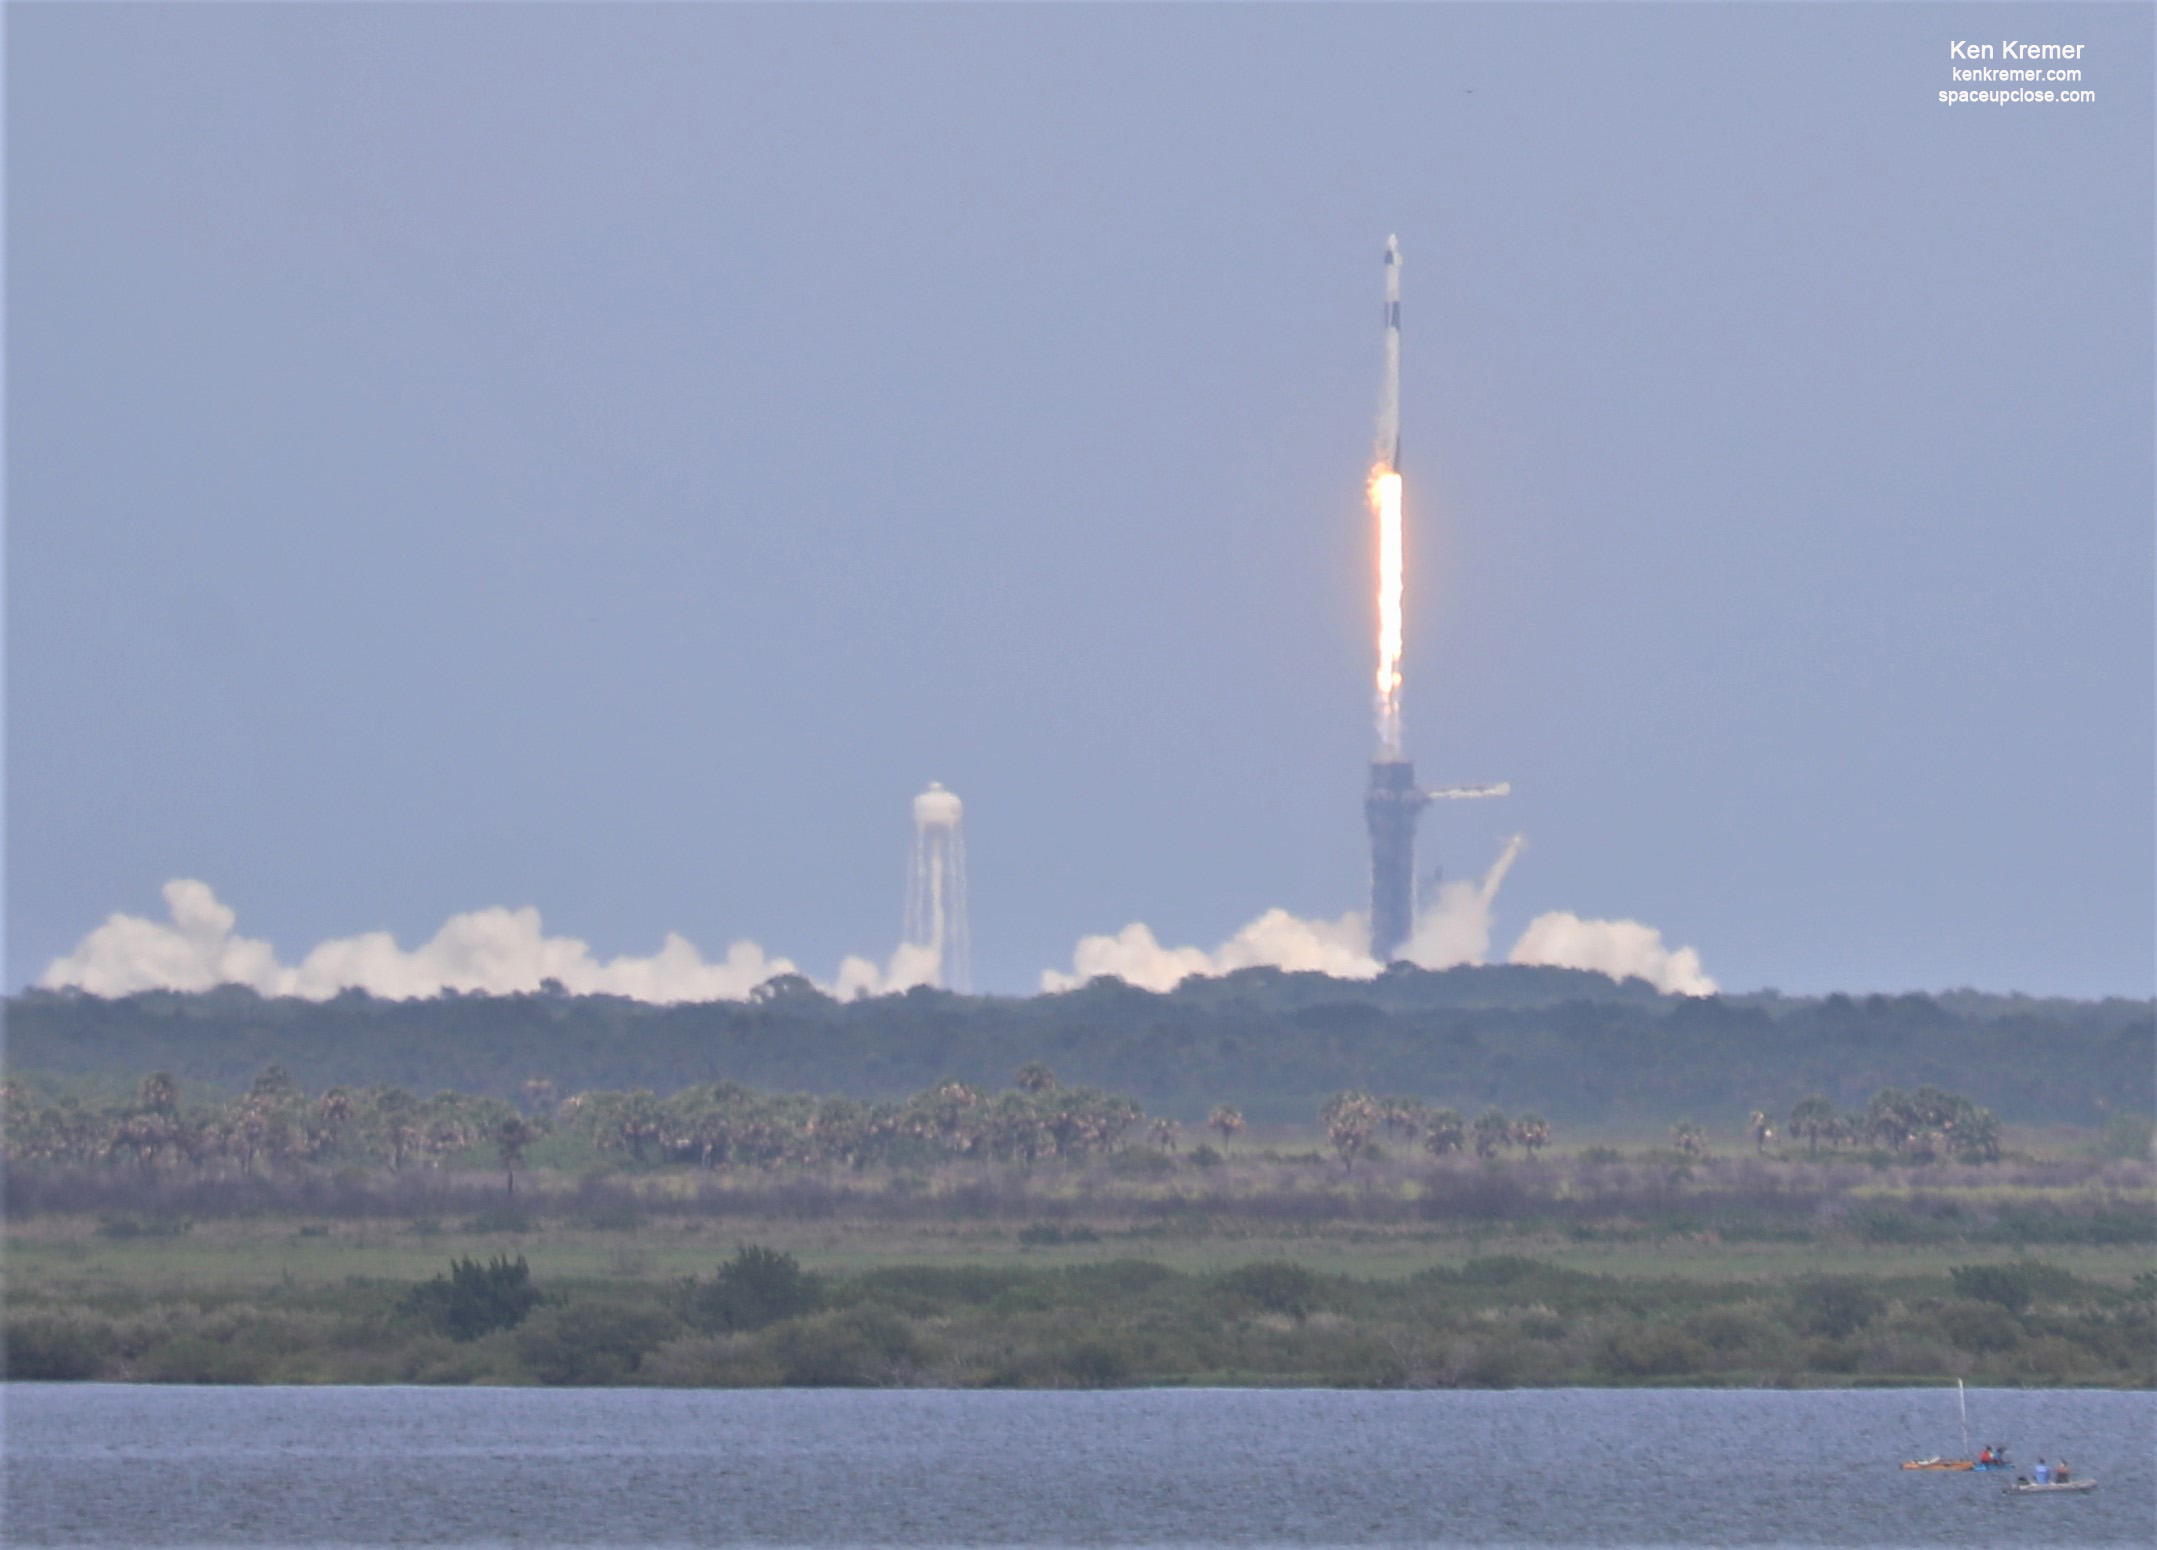 NASA Astronauts Aboard SpaceX Dragon Launch from US Soil 1st Time in 9 Years